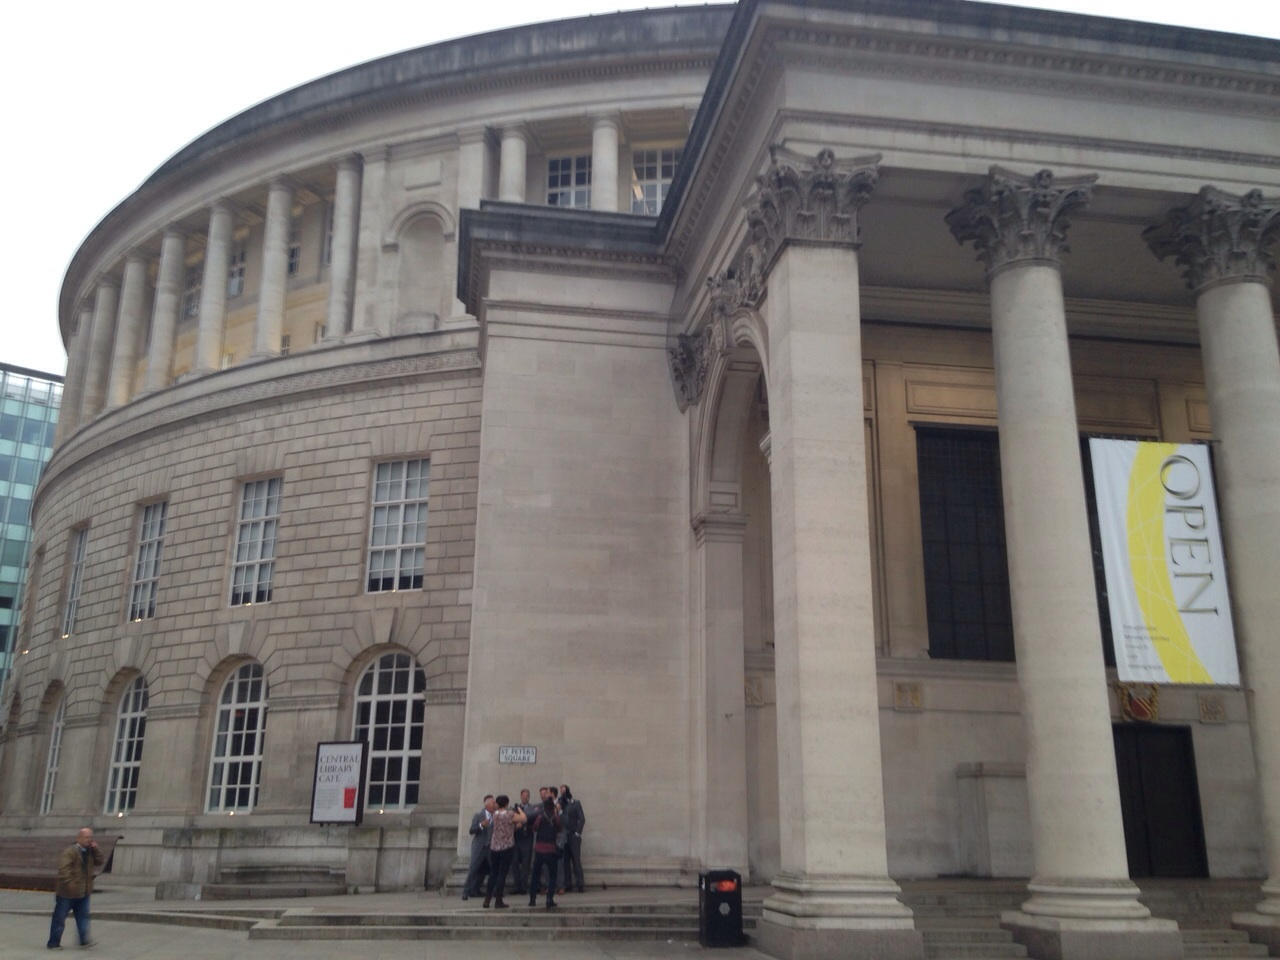 The Manchester Central Library - Grade II listed building. Neoclassical architecture